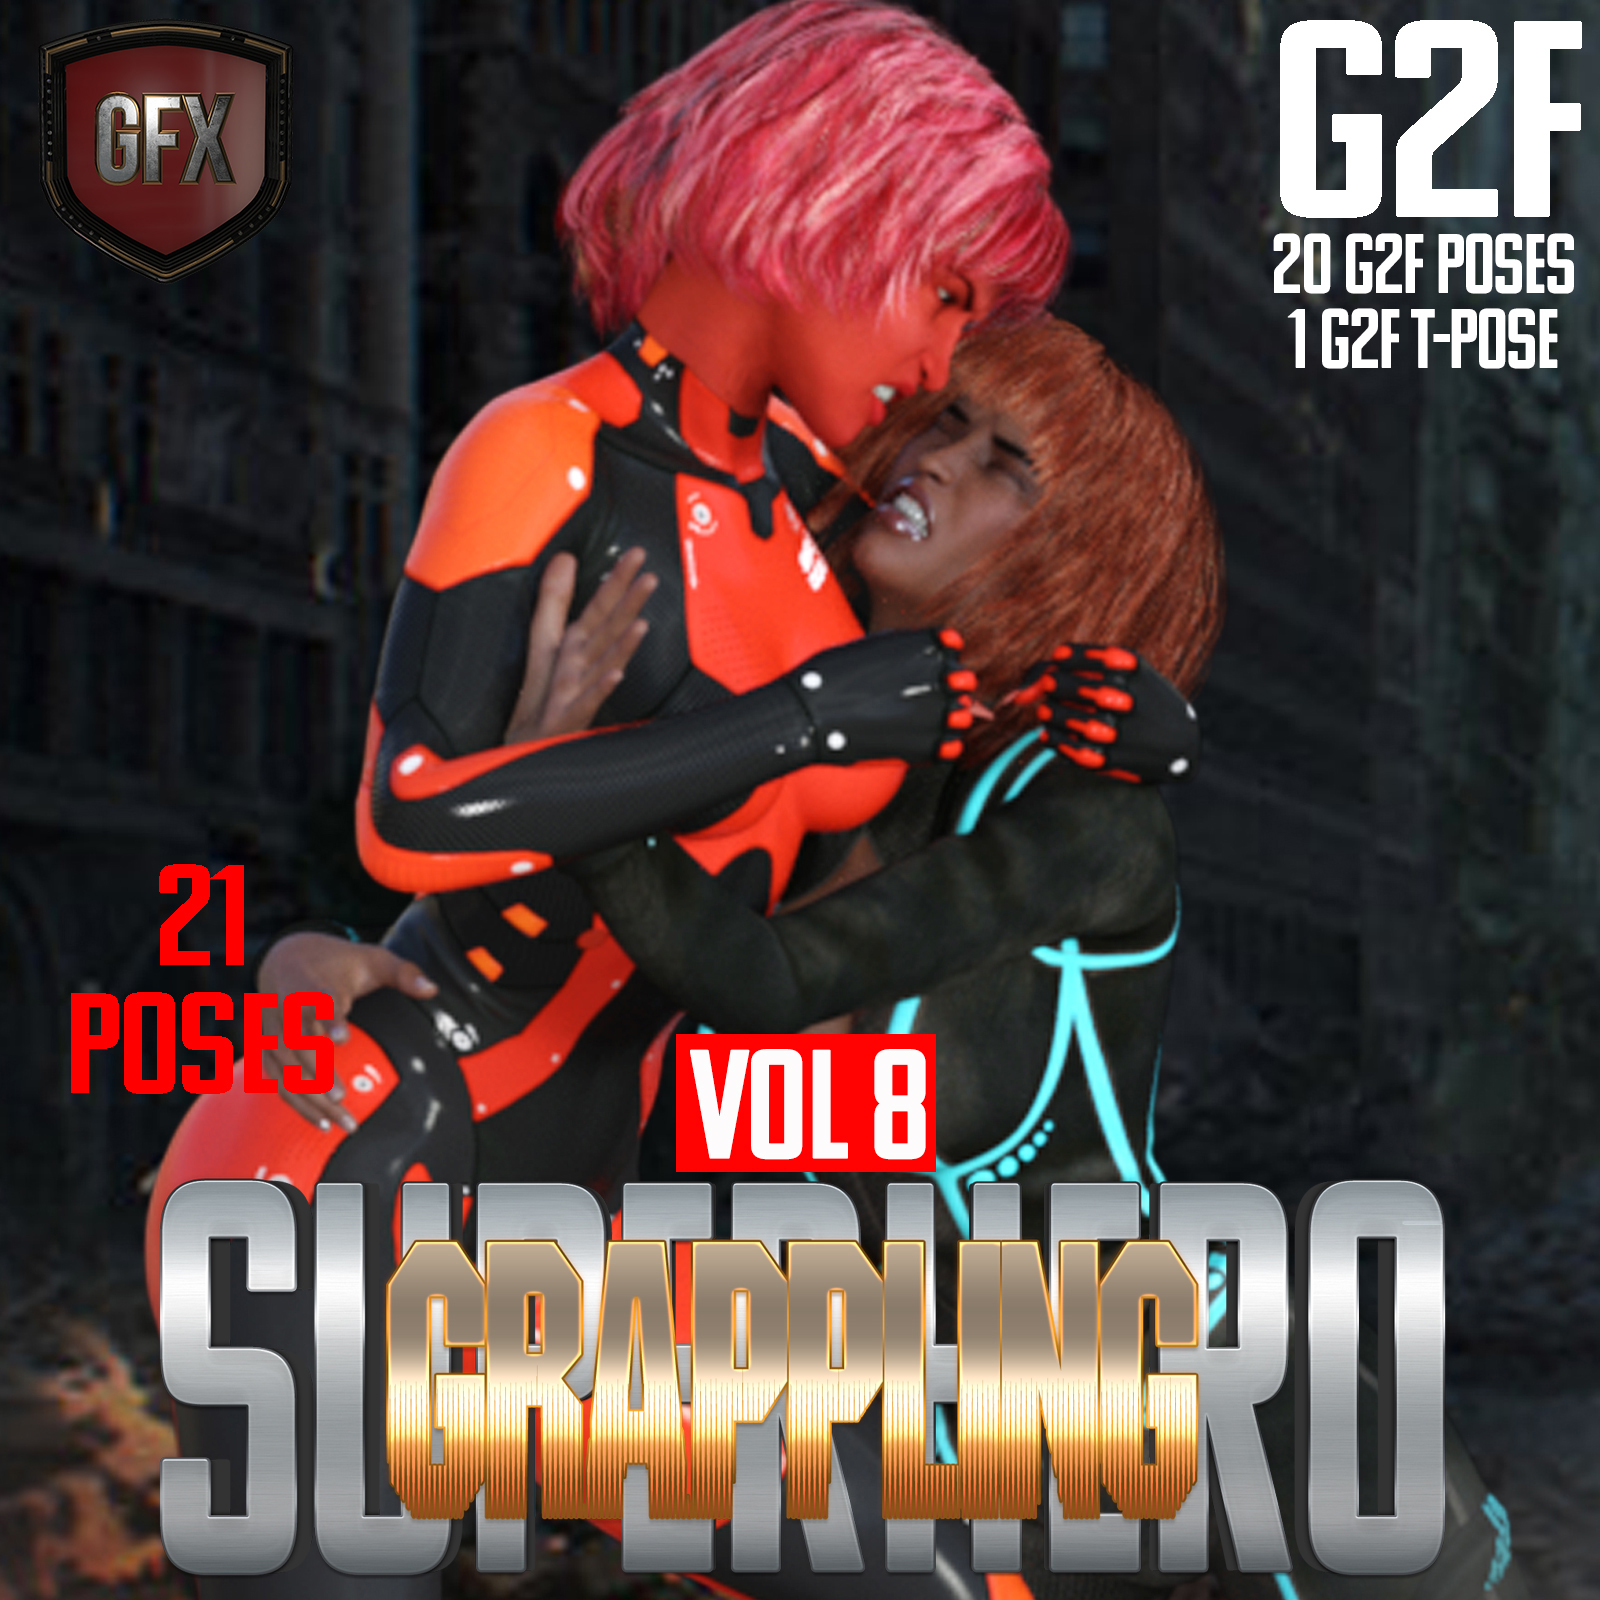 SuperHero Grappling for G2F Volume 8 by GriffinFX